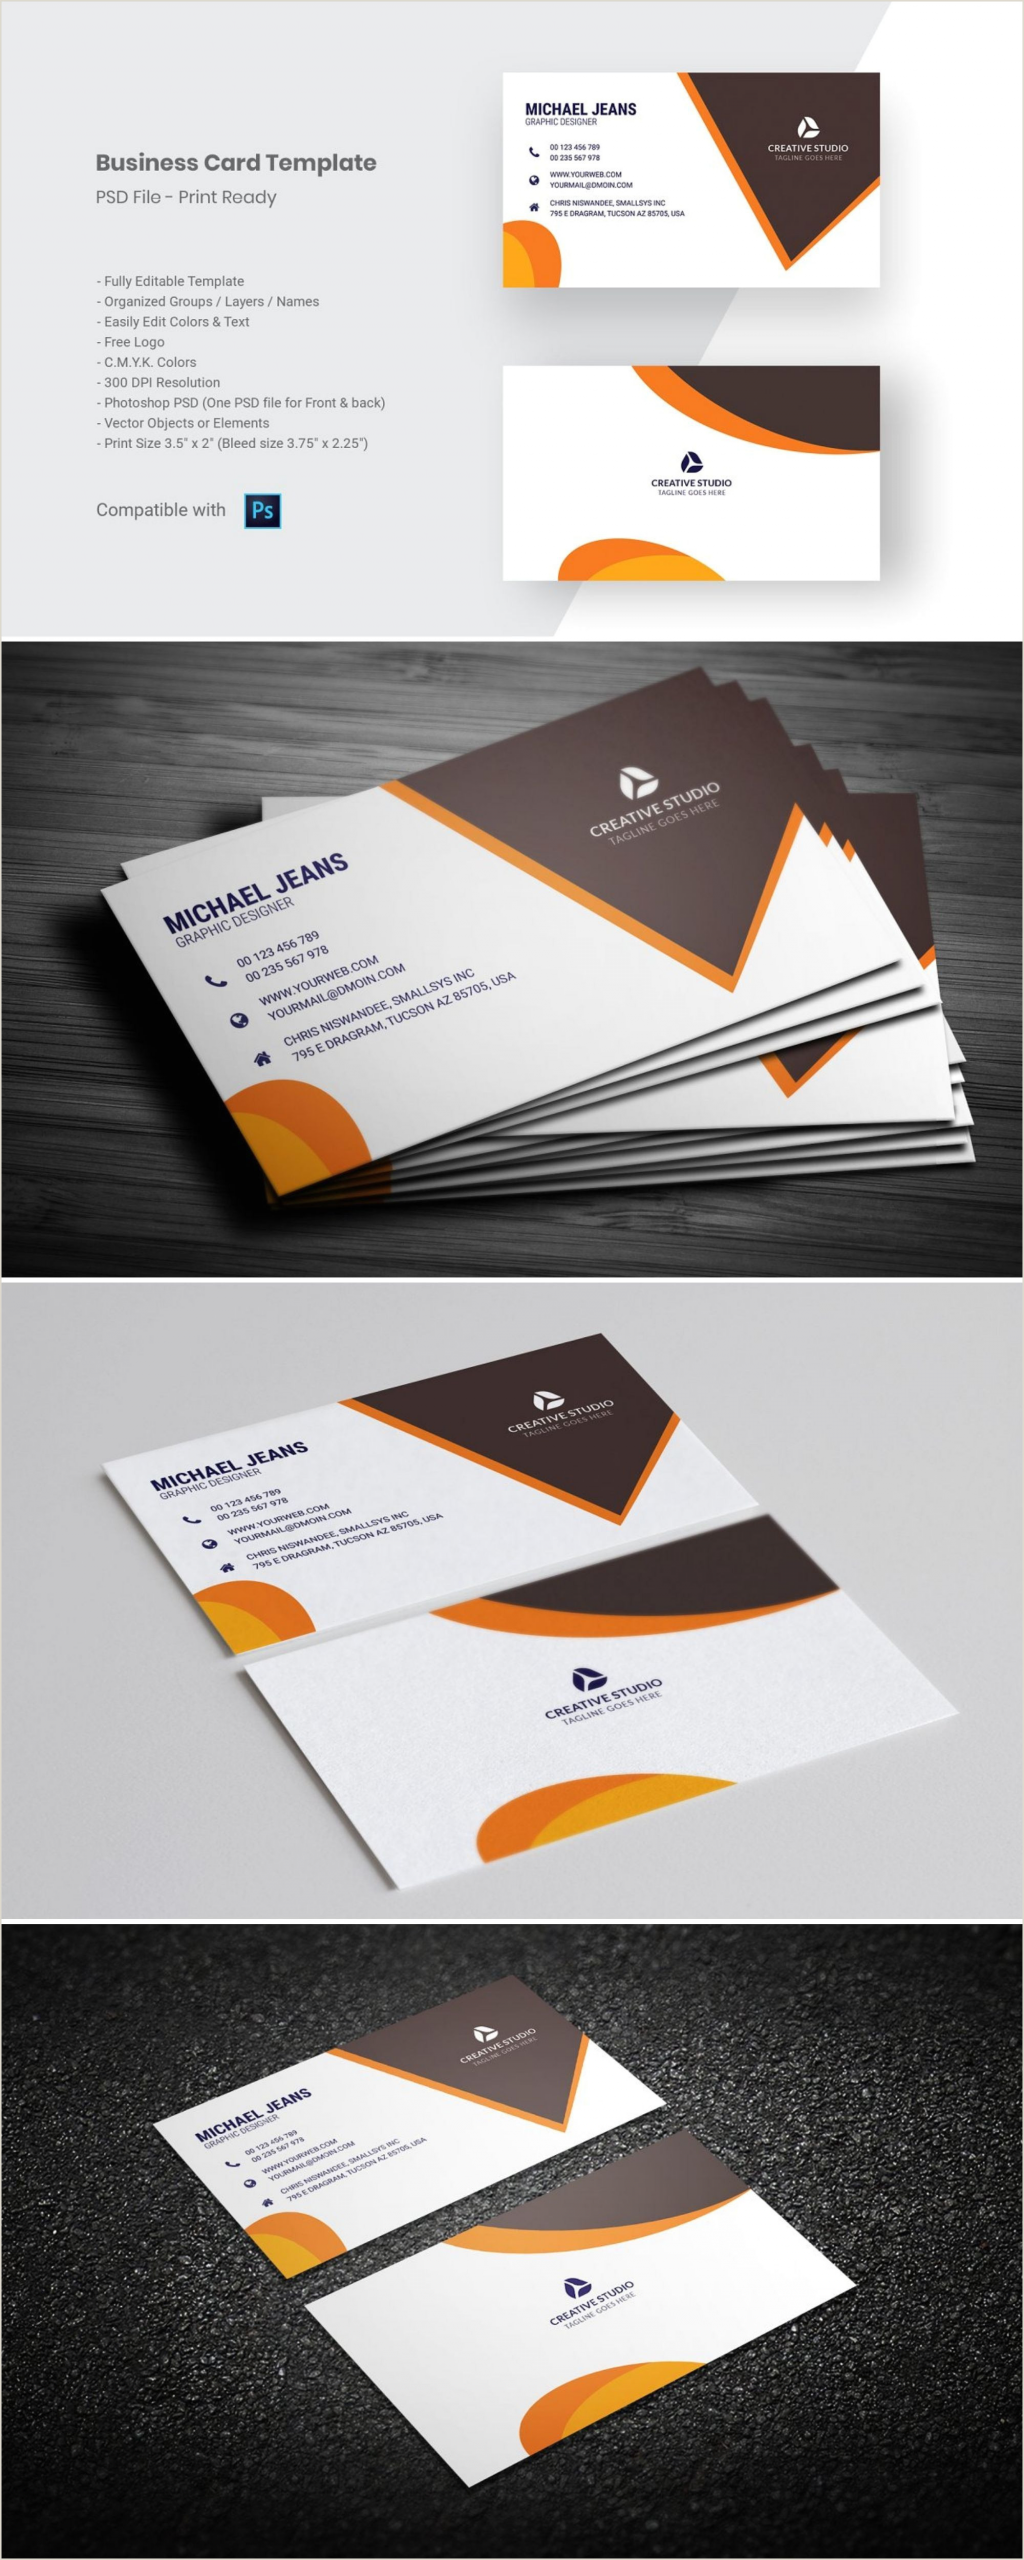 Best Business Cards Mockup Modern Business Card Template